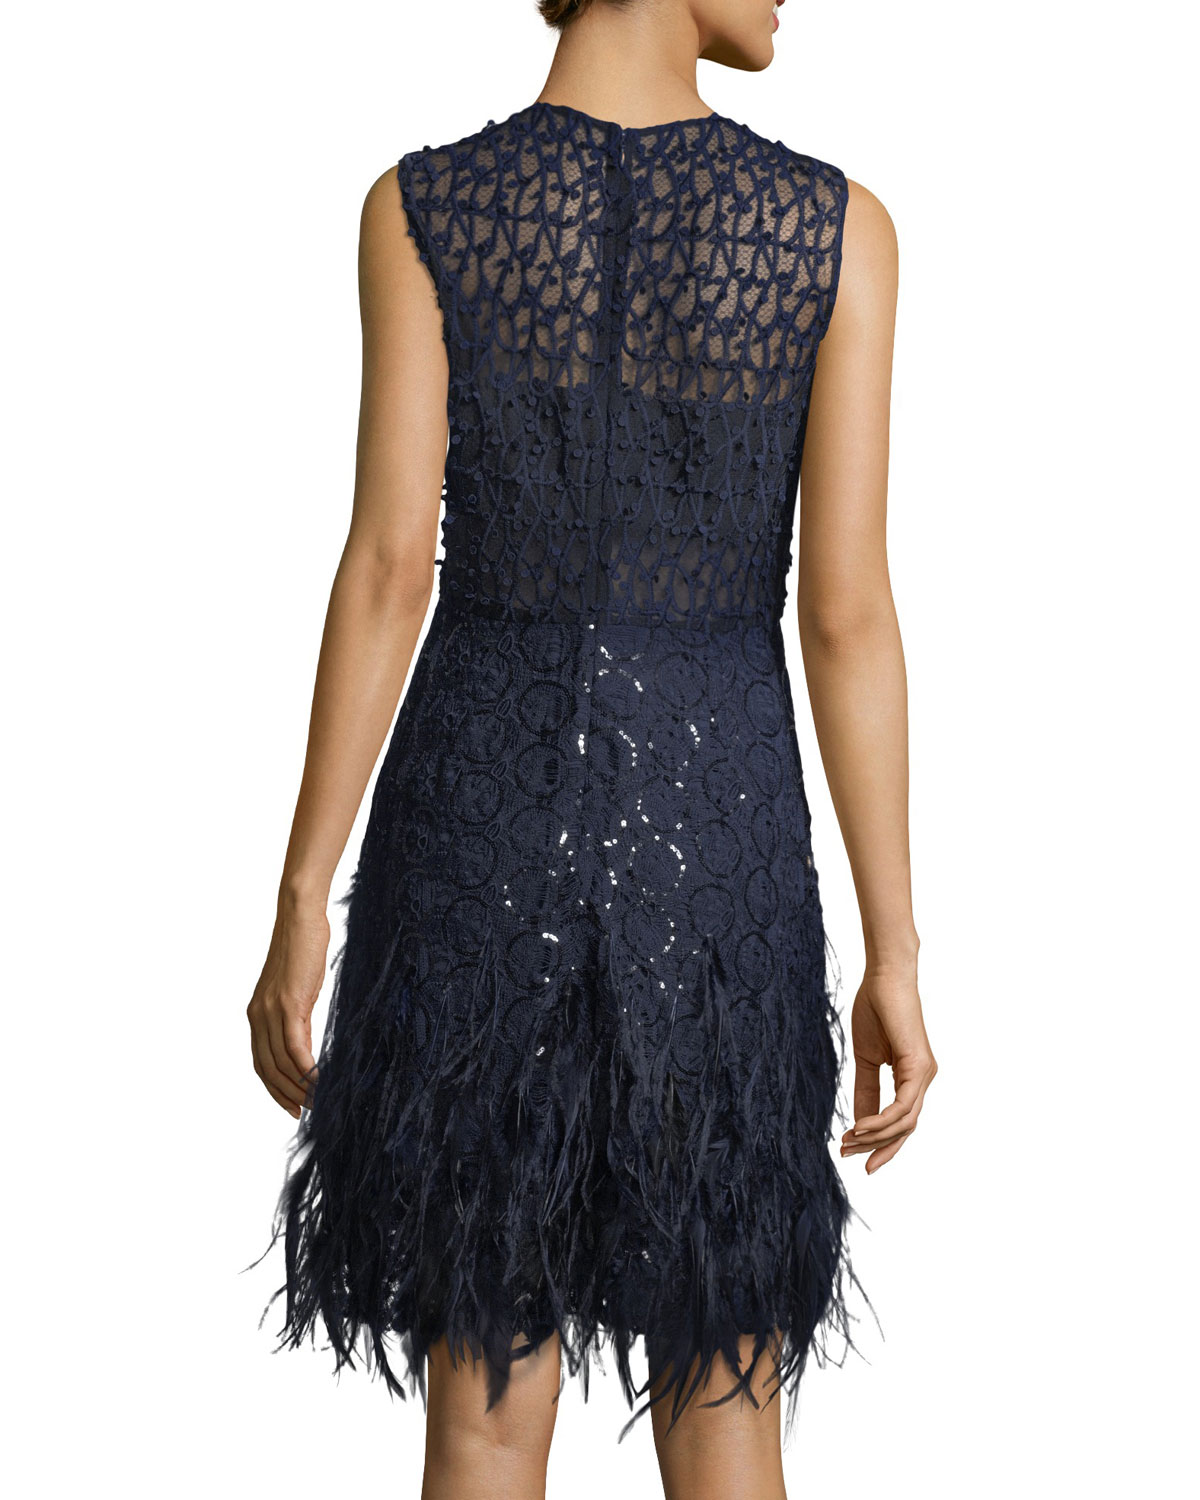 641db699 Elie Tahari Anabelle Sleeveless Lace Cocktail Dress w/ Feather Trim |  Neiman Marcus